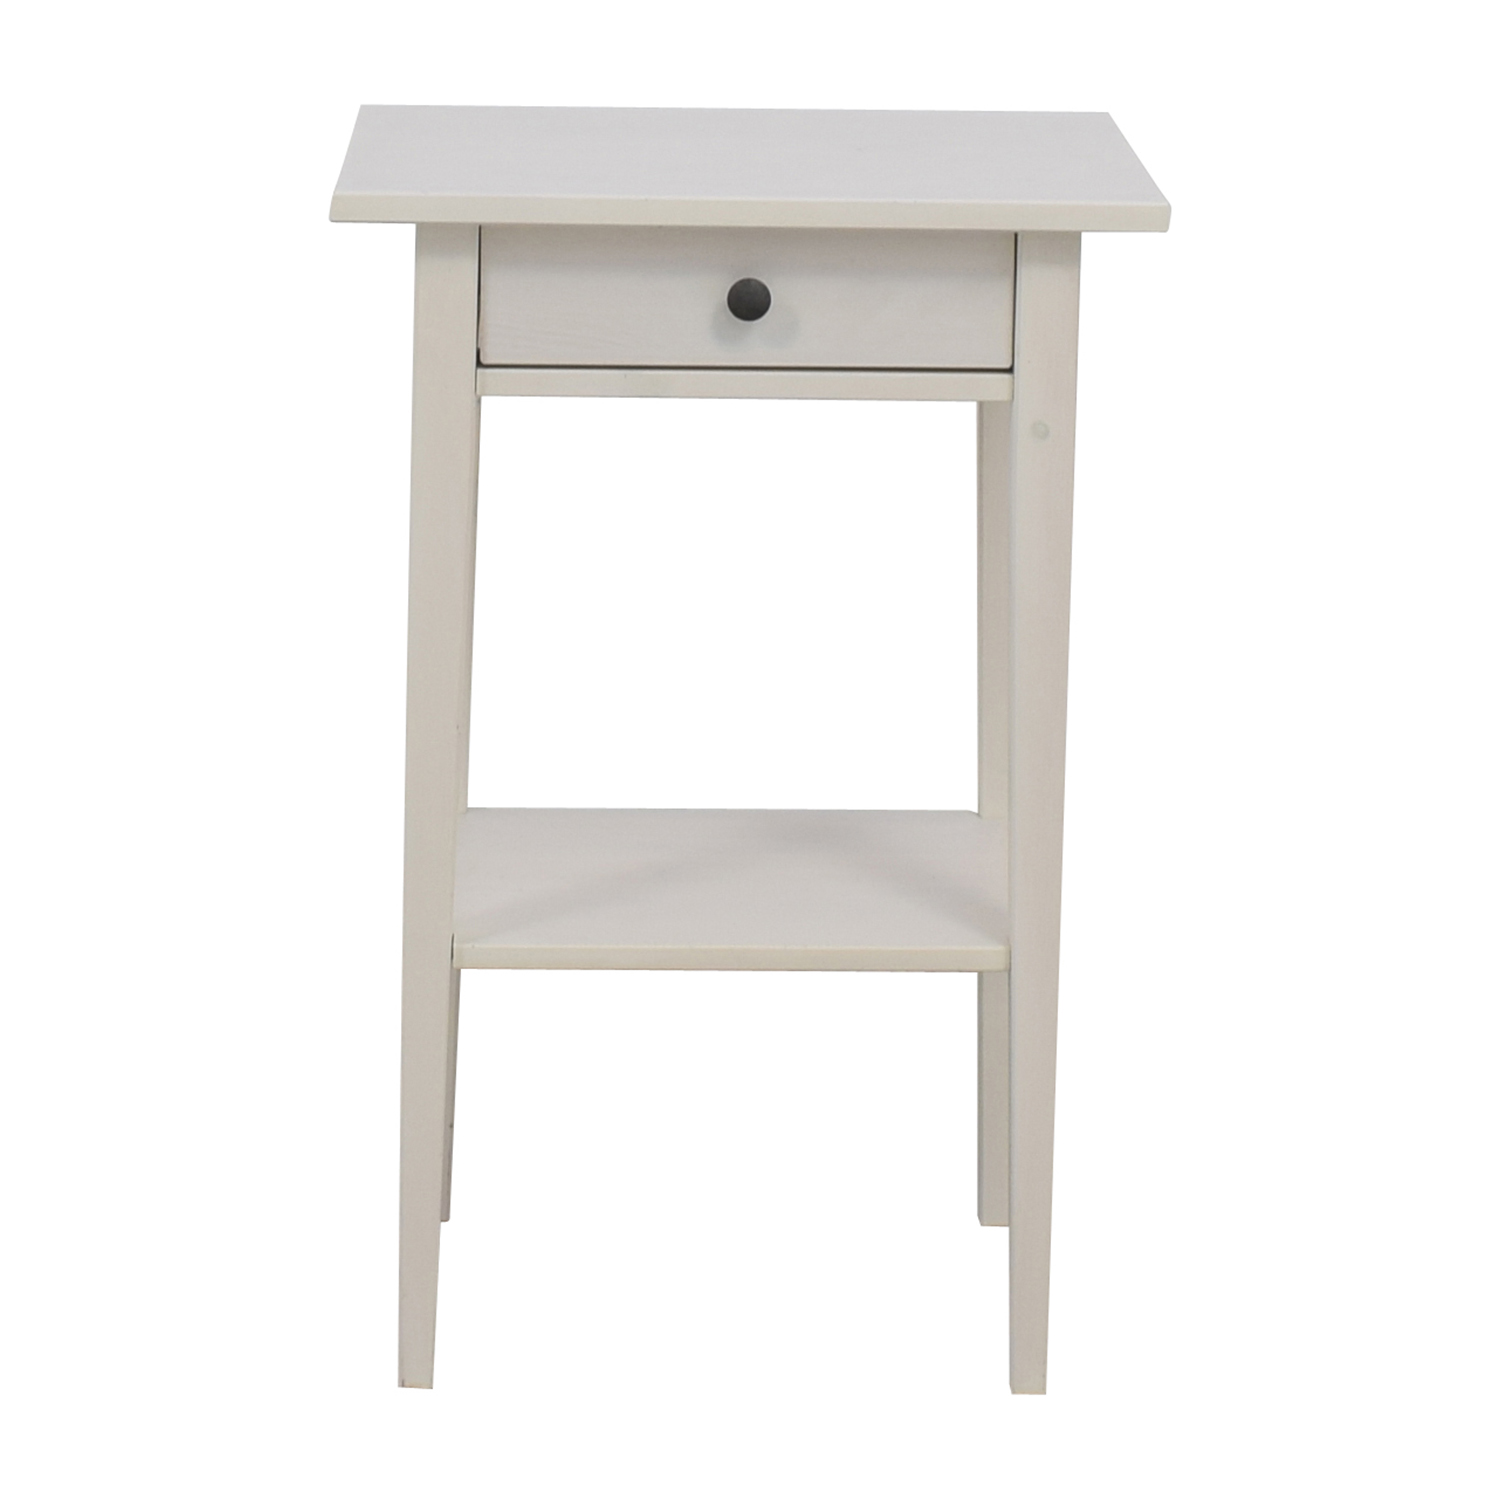 Ikea Hemnes White Night Table Dimensions